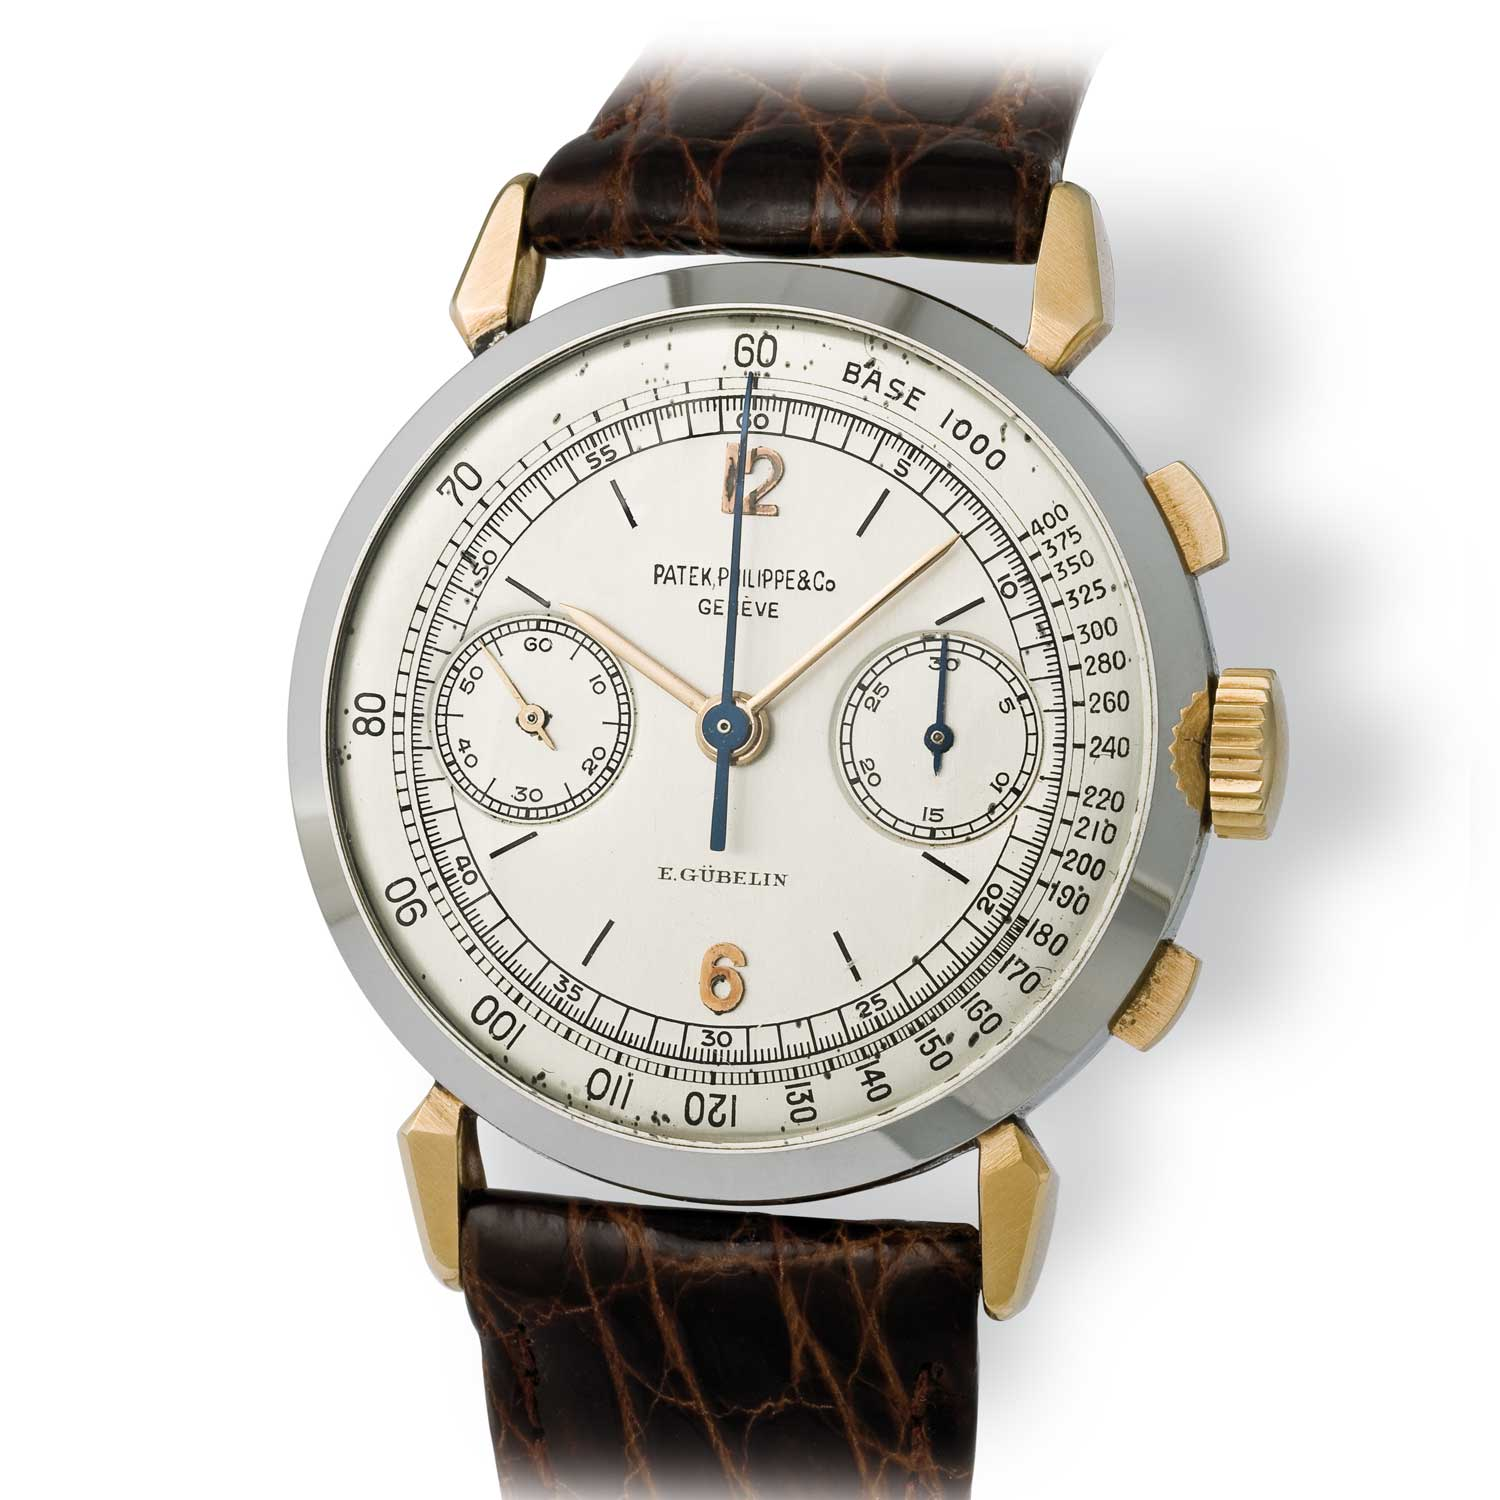 Patek Philippe ref. 1579 gold and steel chronograph with Arabic numerals (Image: John Goldberger)